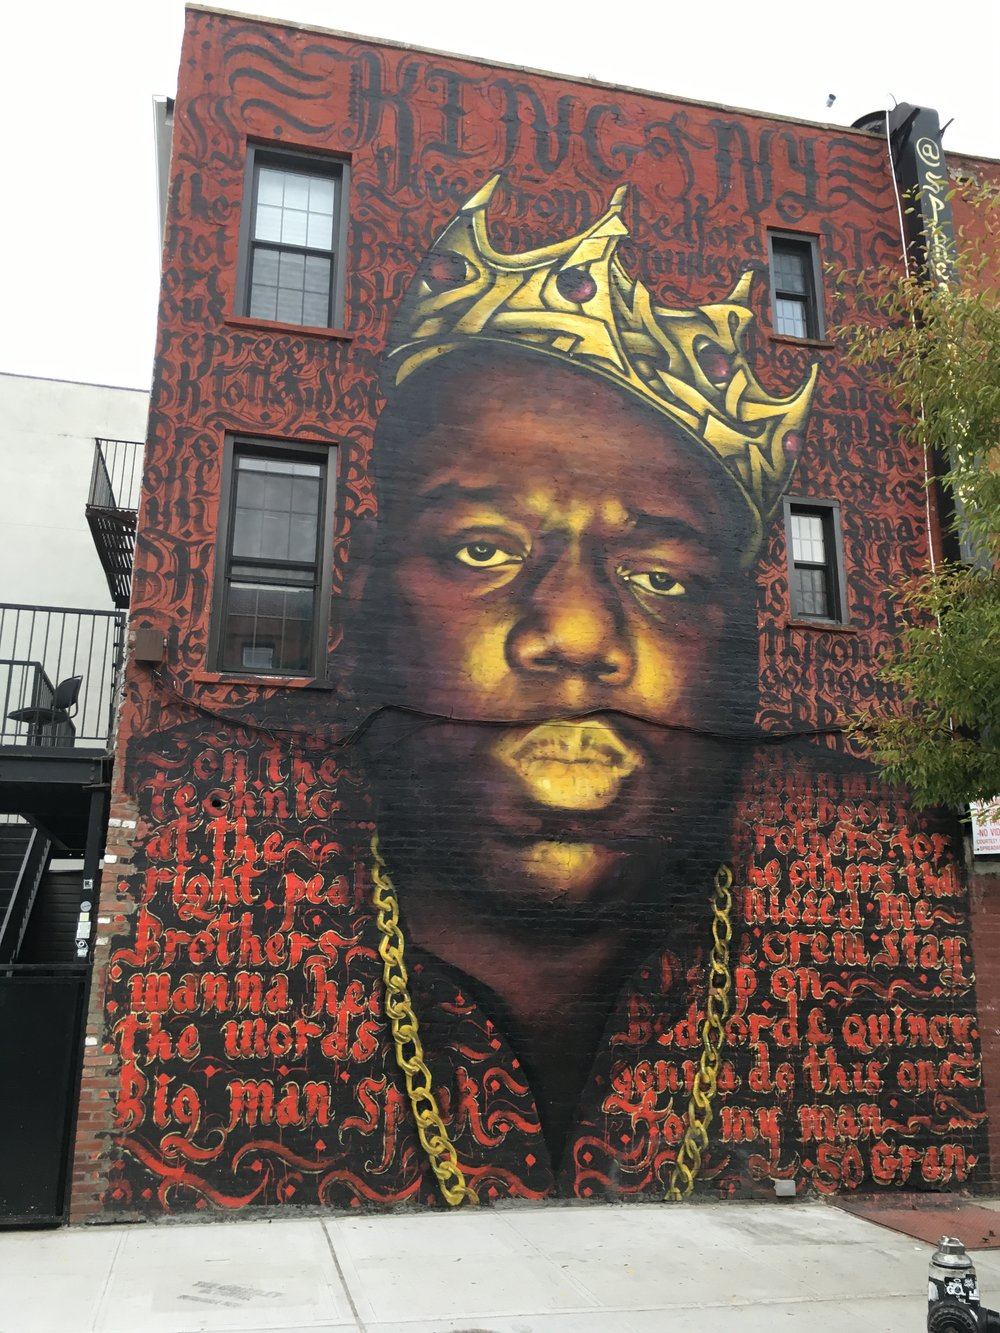 Located just a few blocks from Our Place on the corner of Bedford & Quincy. Learn more about this  mural of Notorious BIG .